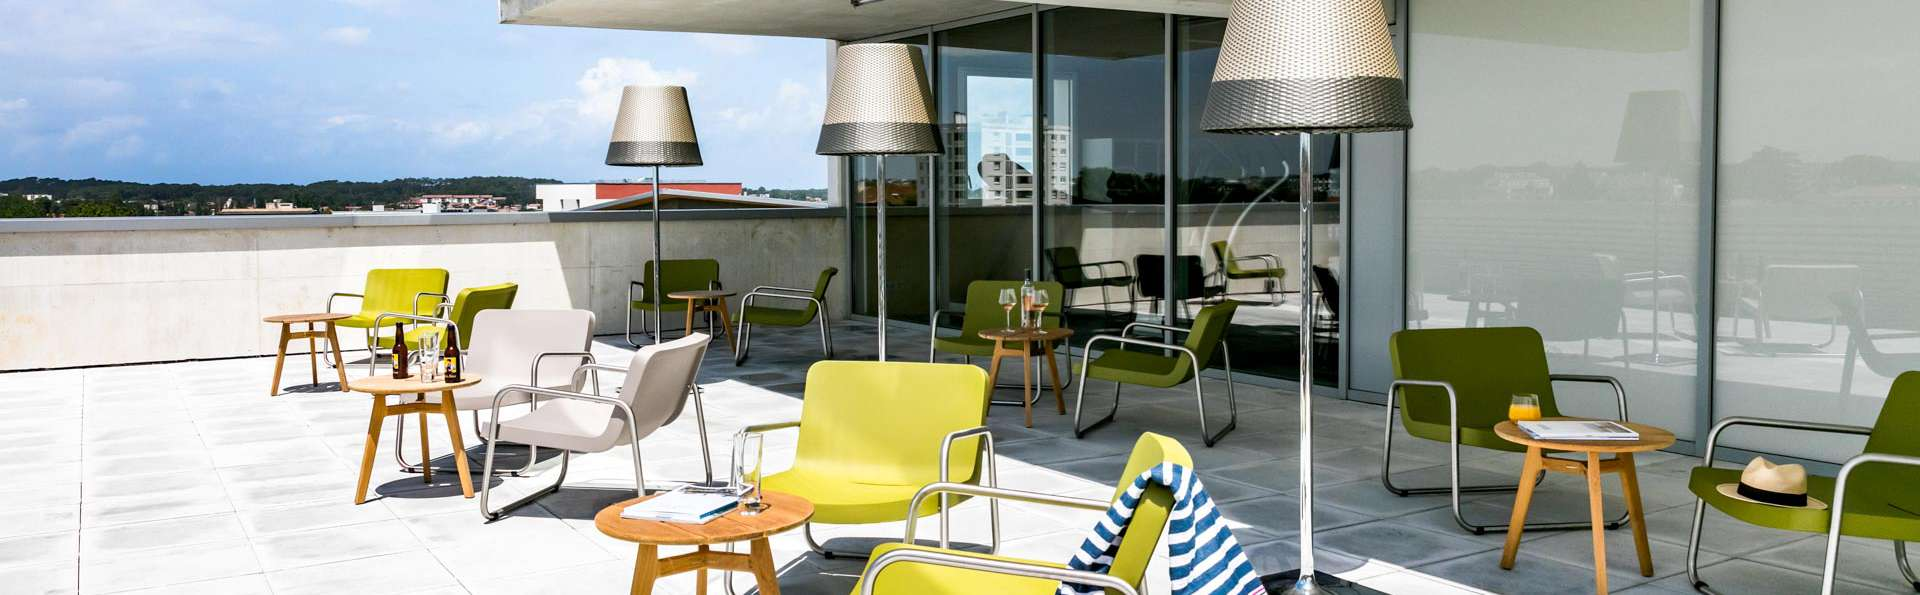 OKKO Hotels Bayonne Centre - EDIT_TERRACE_01.jpg